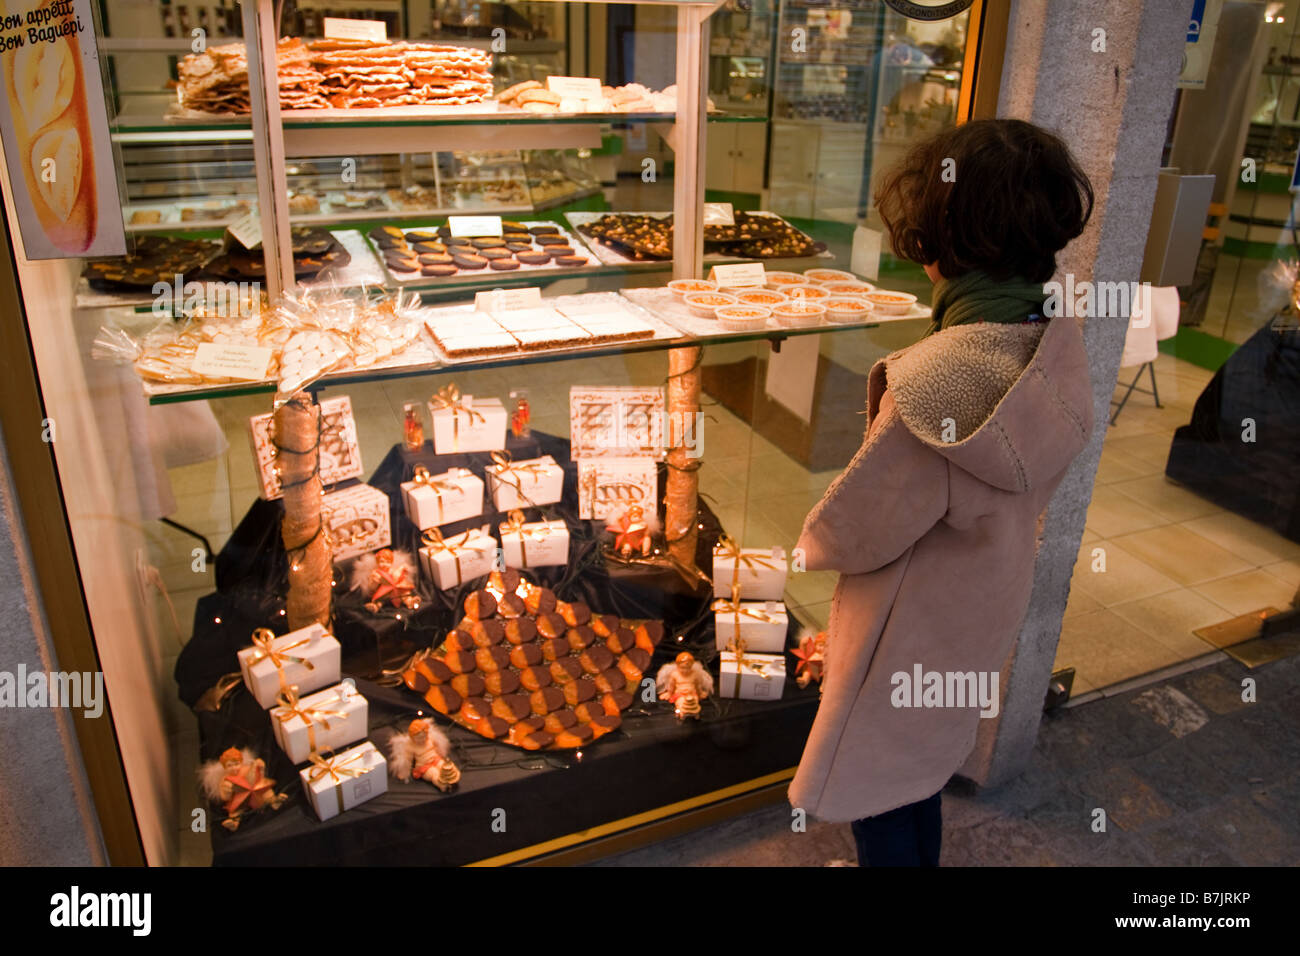 A young girl looks at a display of nougat  in a shop window in Aigues Mortes in Southern France - Stock Image